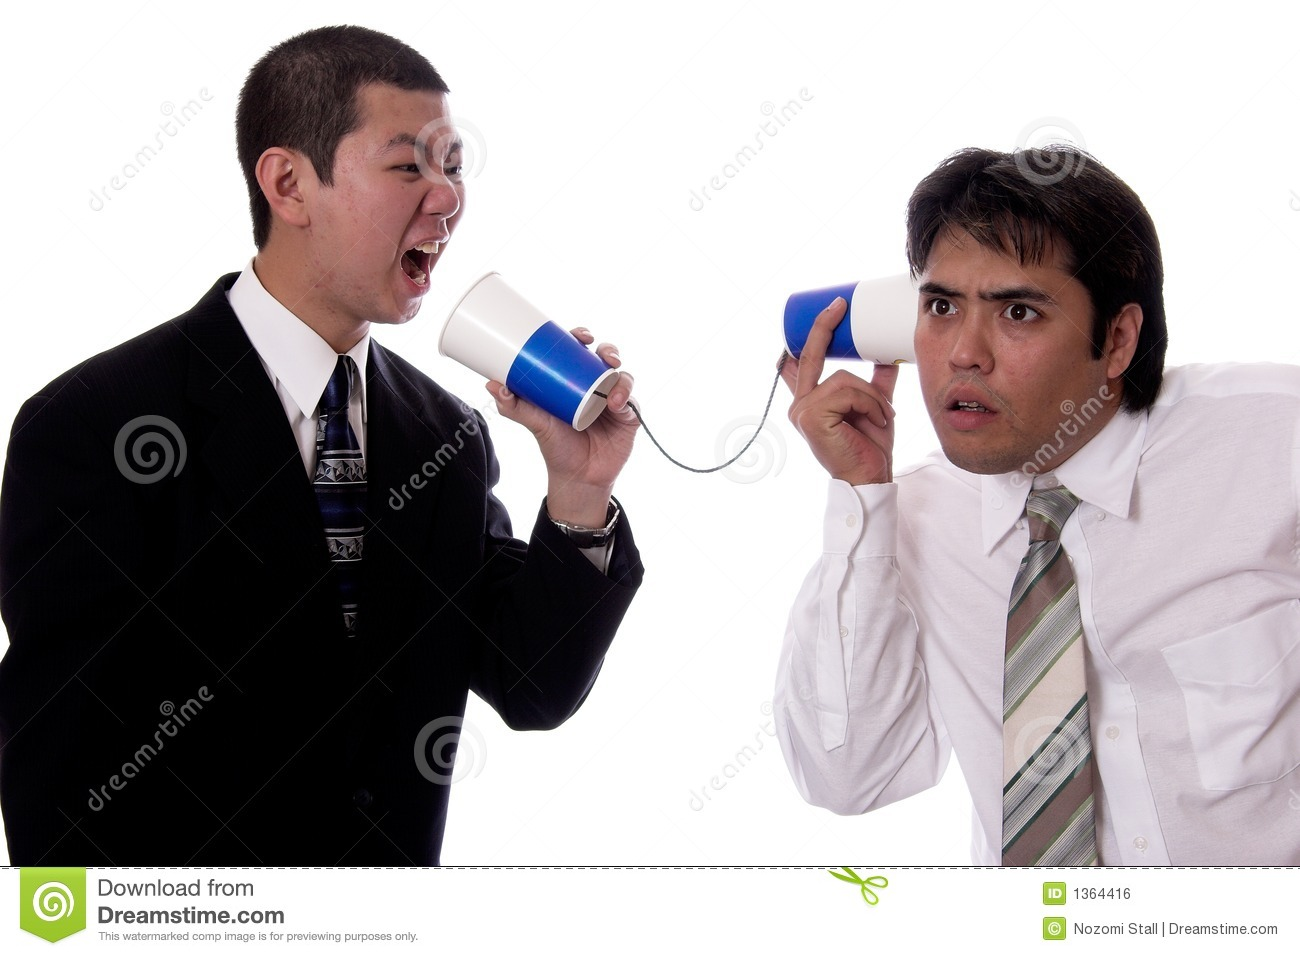 Bad Communication Royalty Free Stock Image - Image: 1364416